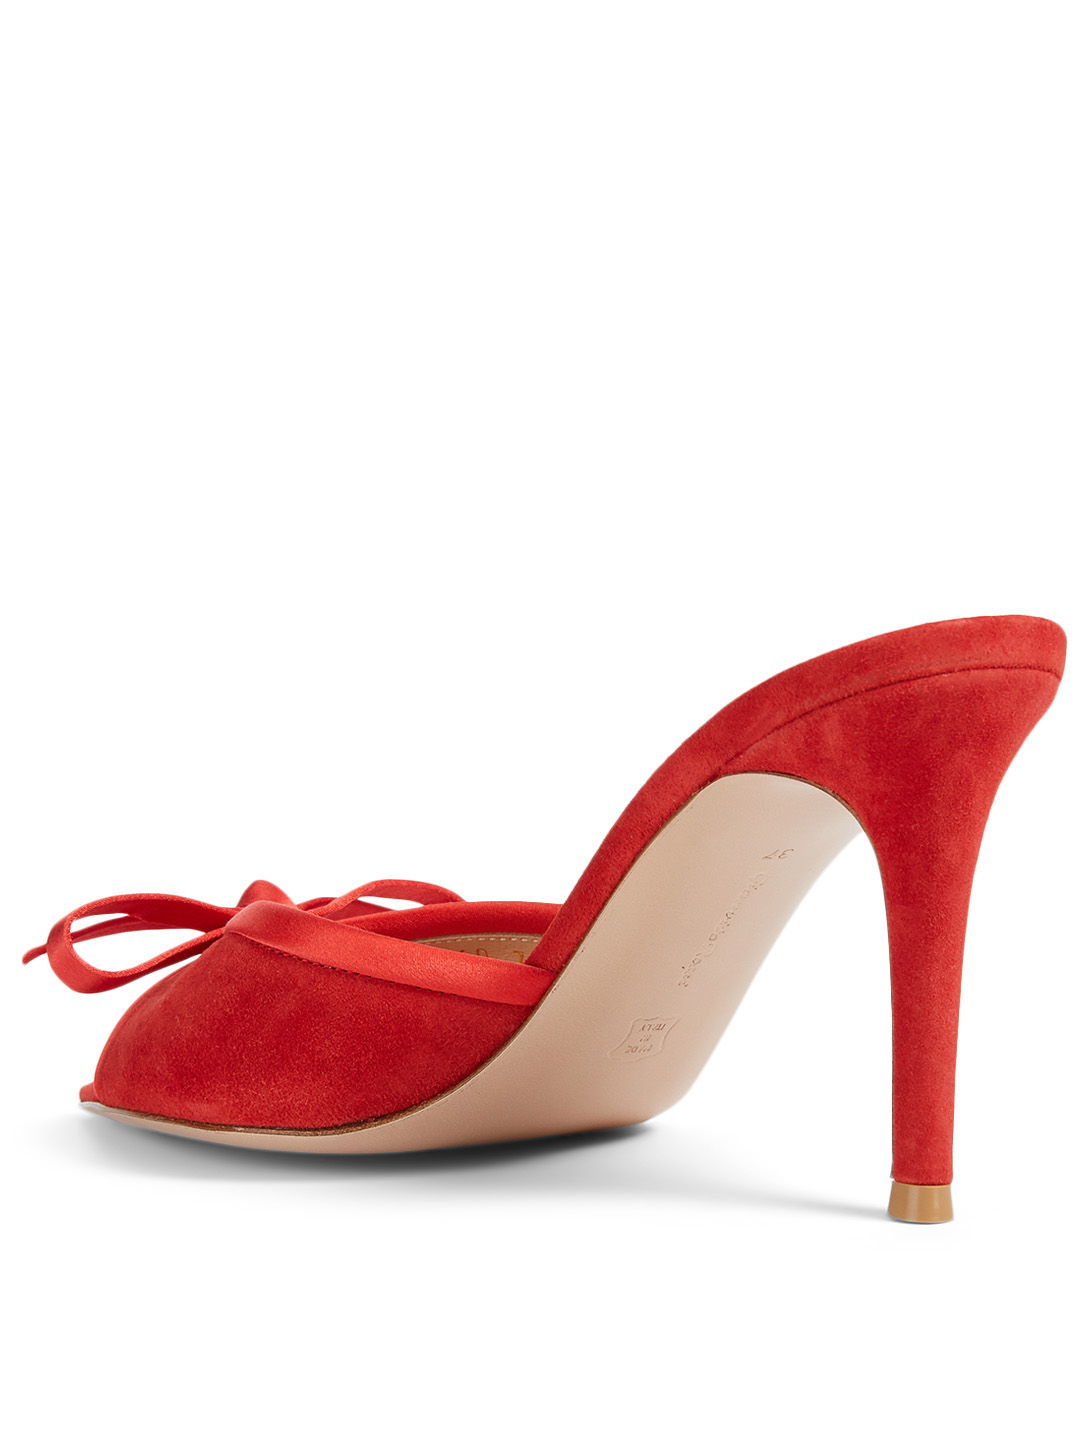 GIANVITO ROSSI Izzy Suede Mules With Bow Women's Red